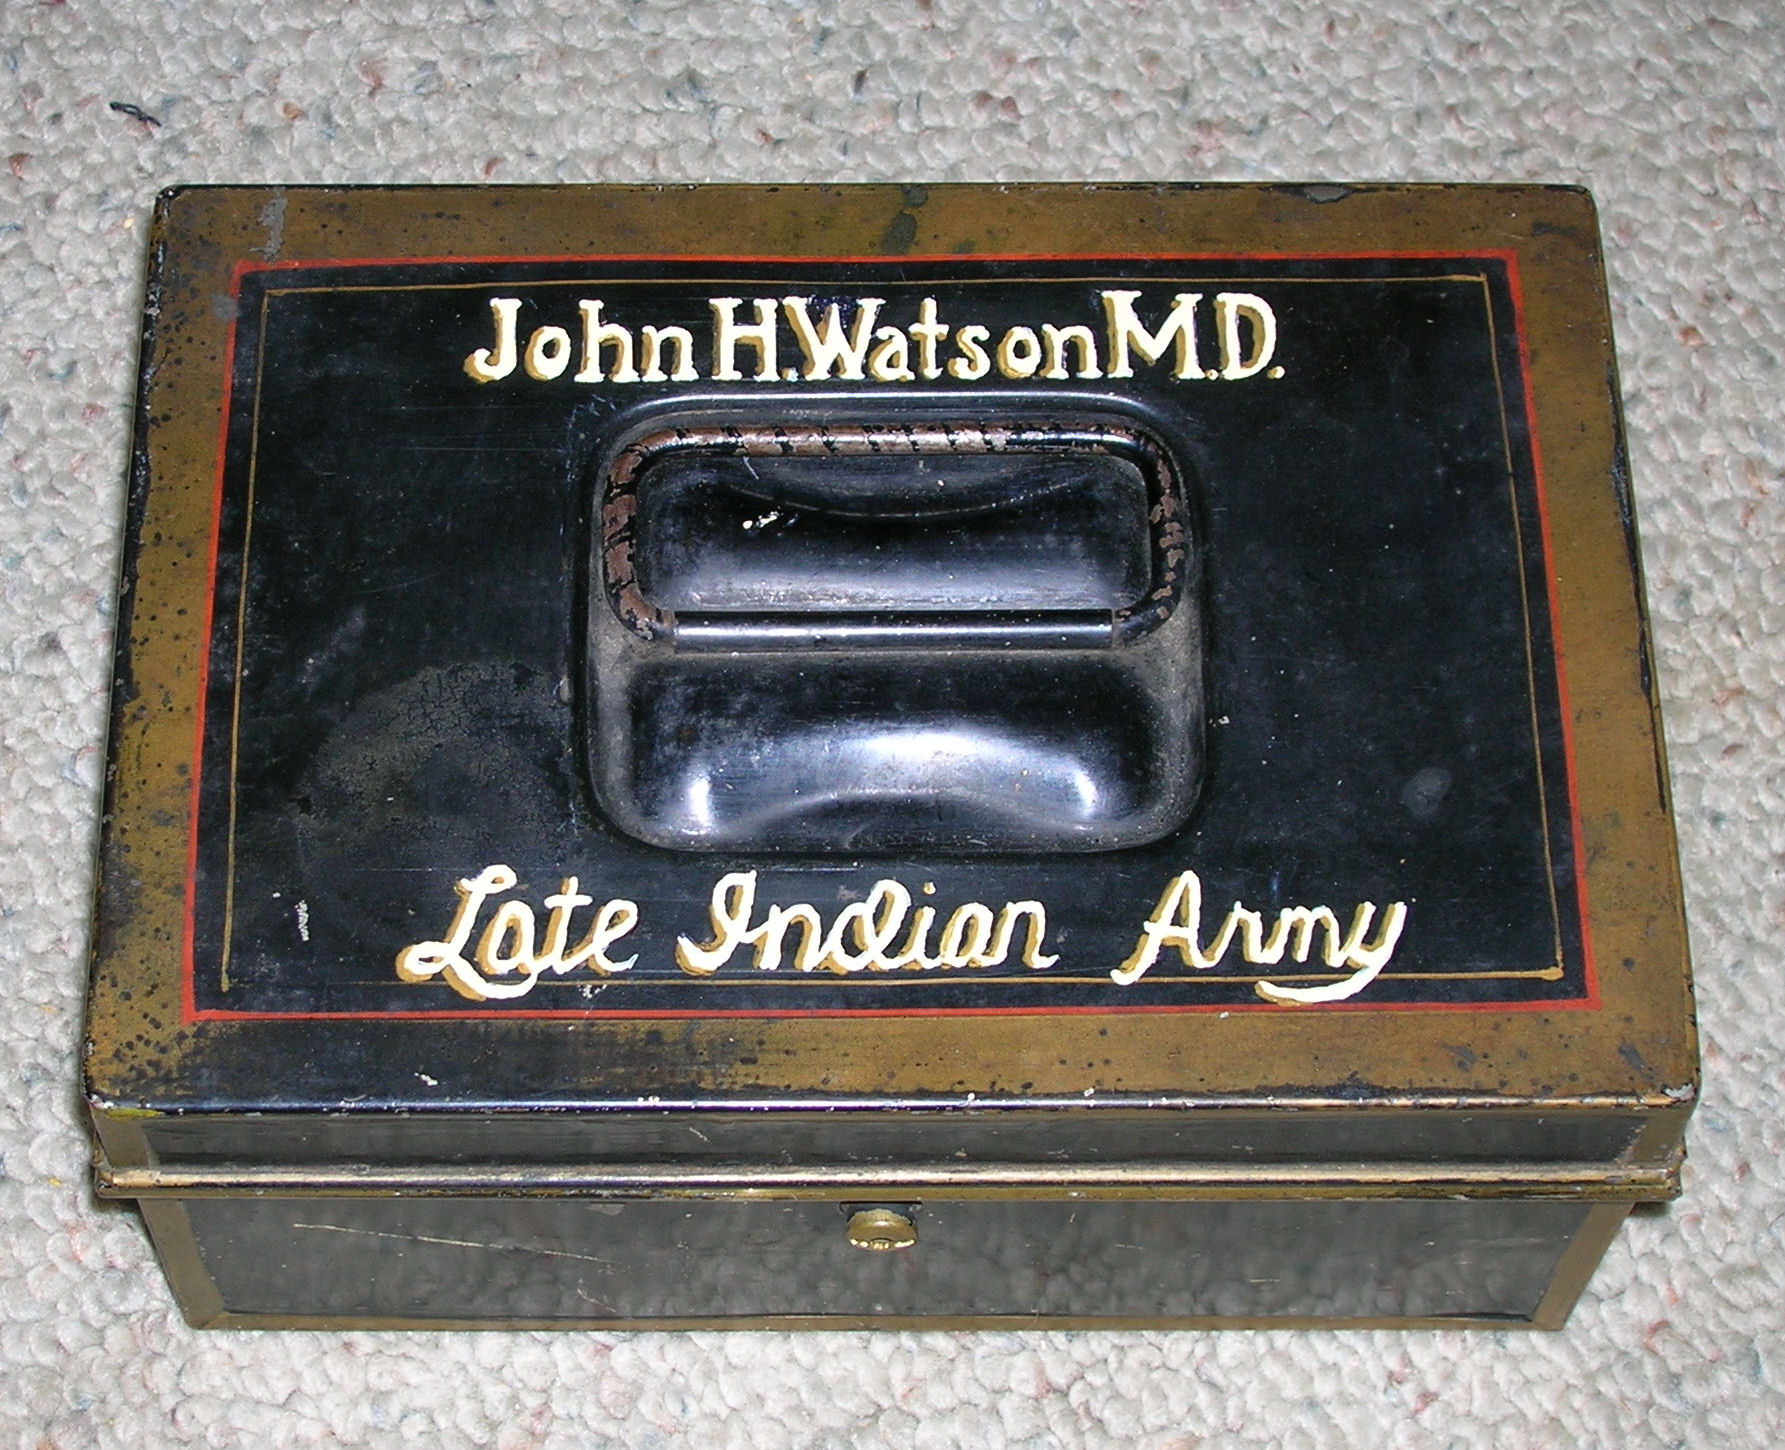 From Watson's Tin Box: The Yellow Face